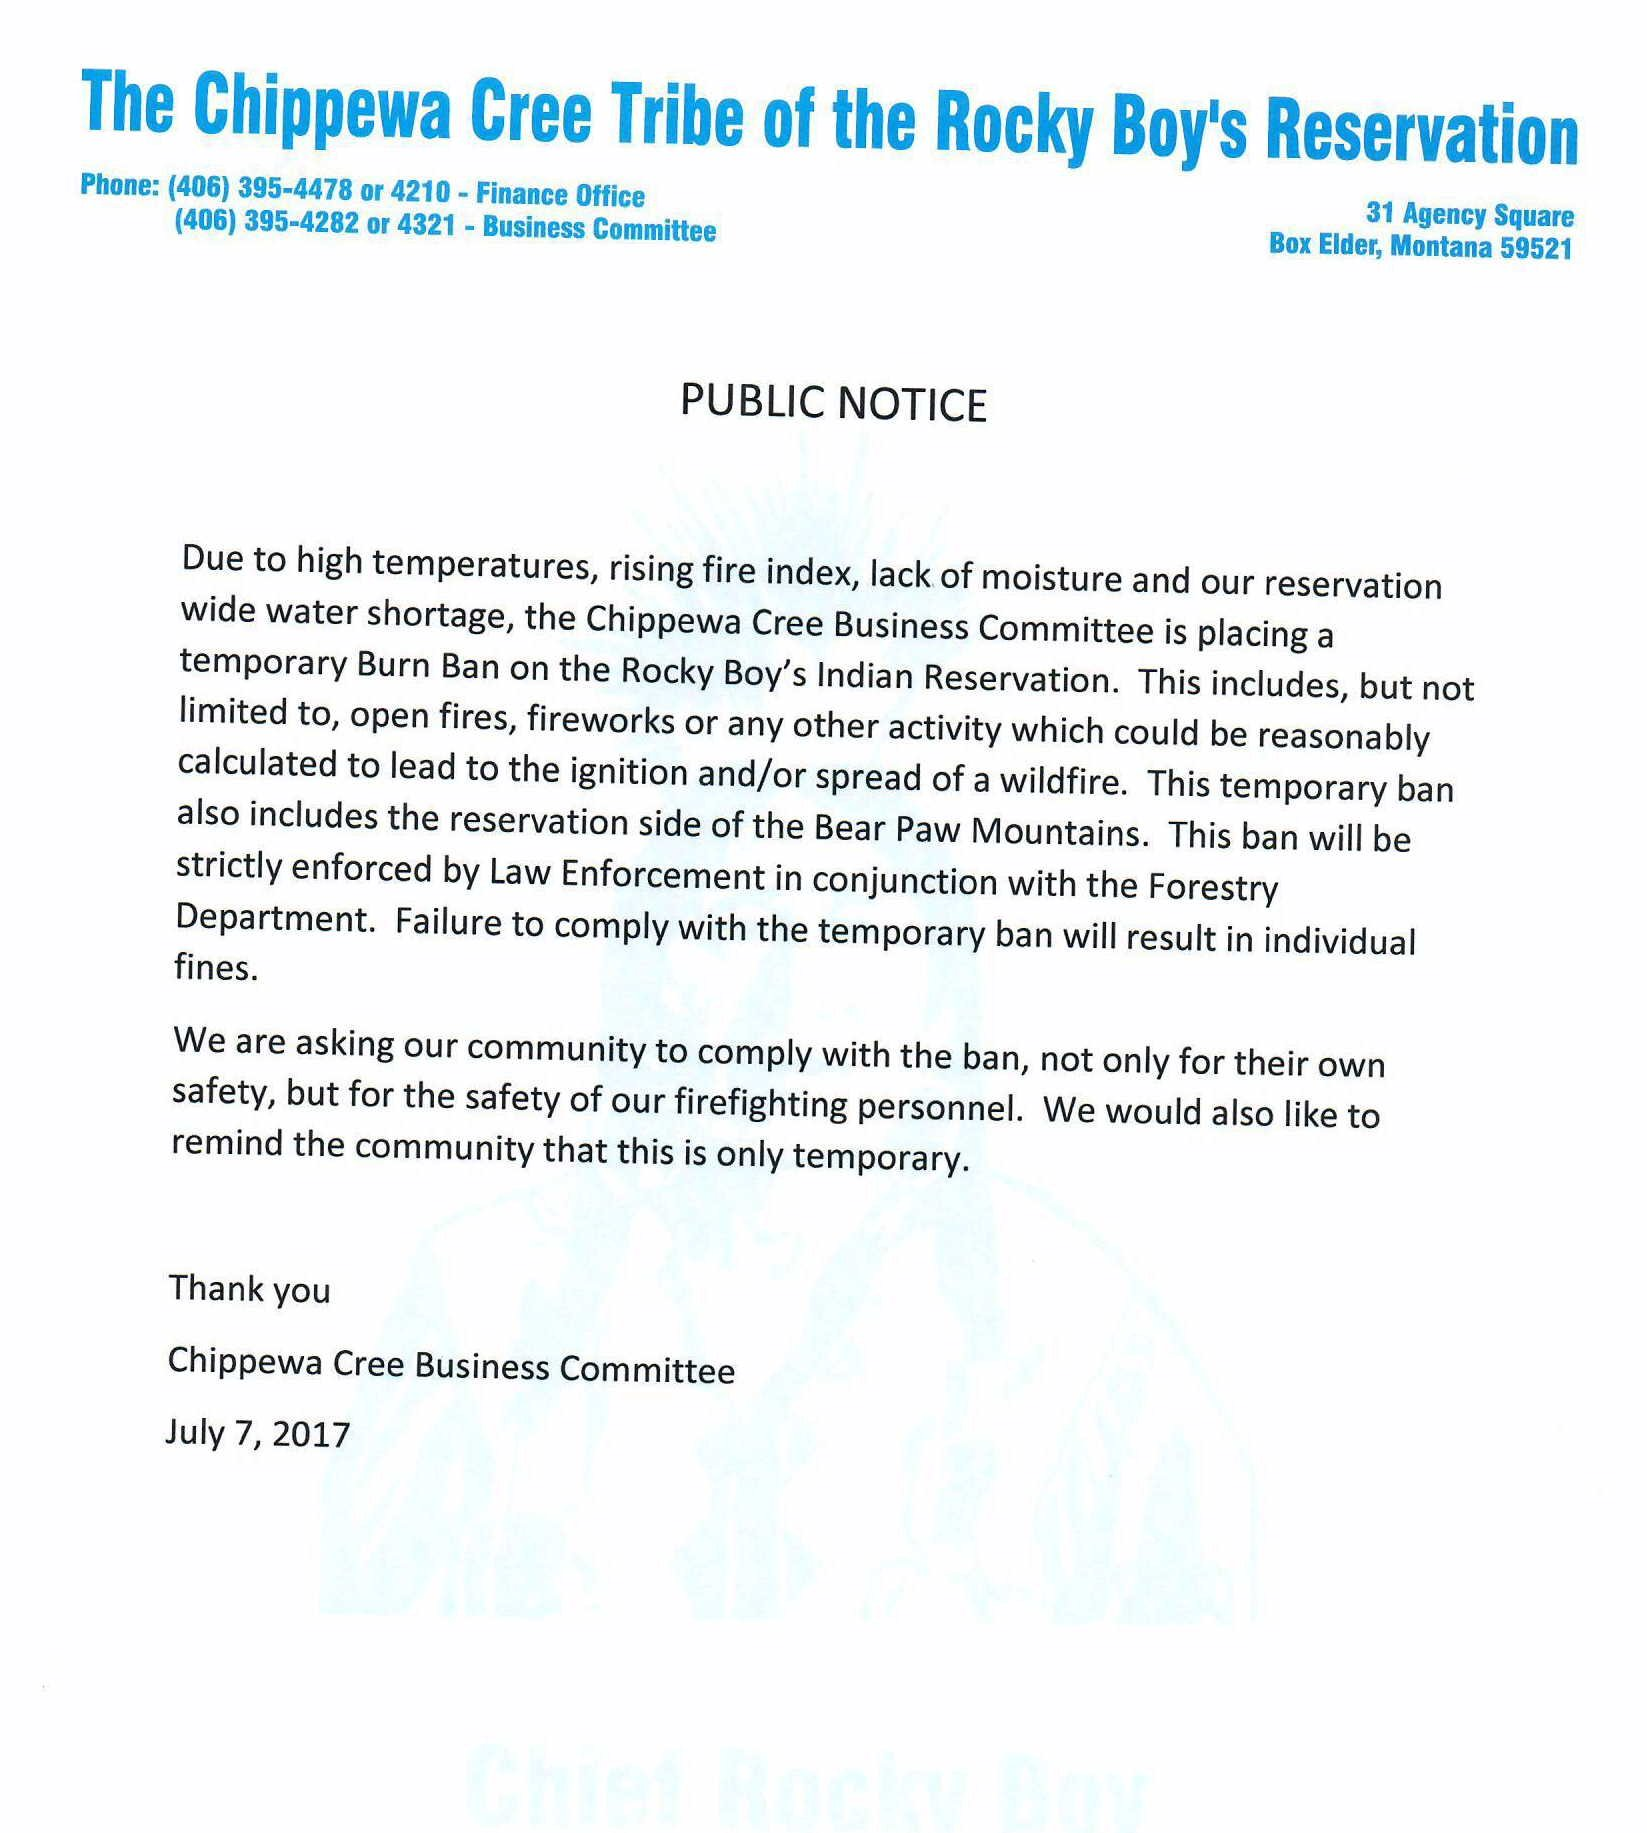 The Chippewa Cree Tribe also implemented Stage 1 fire restrictions on the Reservation.